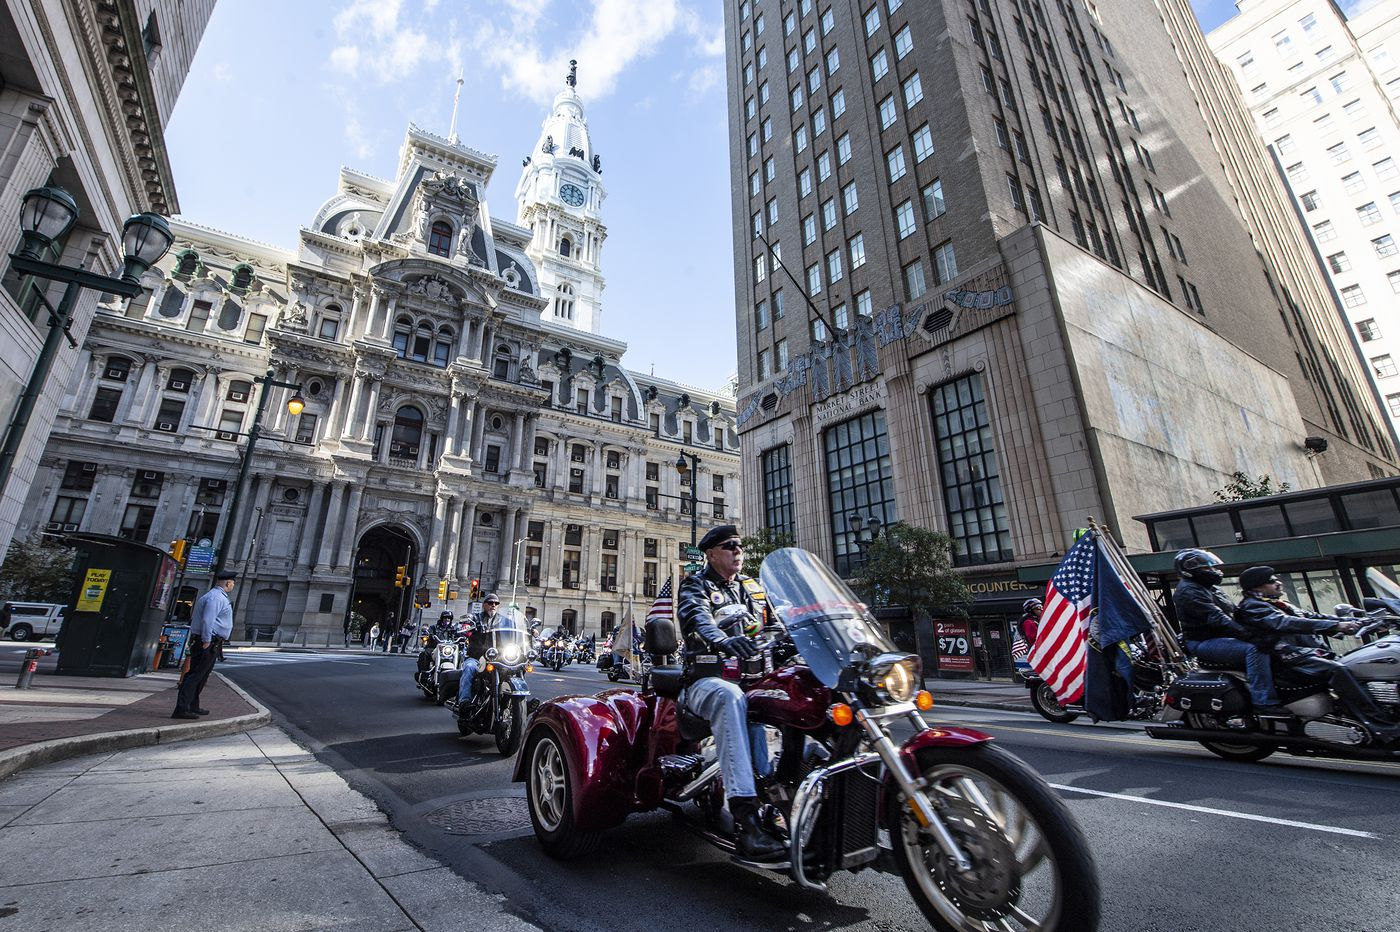 Amid motorcycles and American flags, Philly pays homage to military veterans